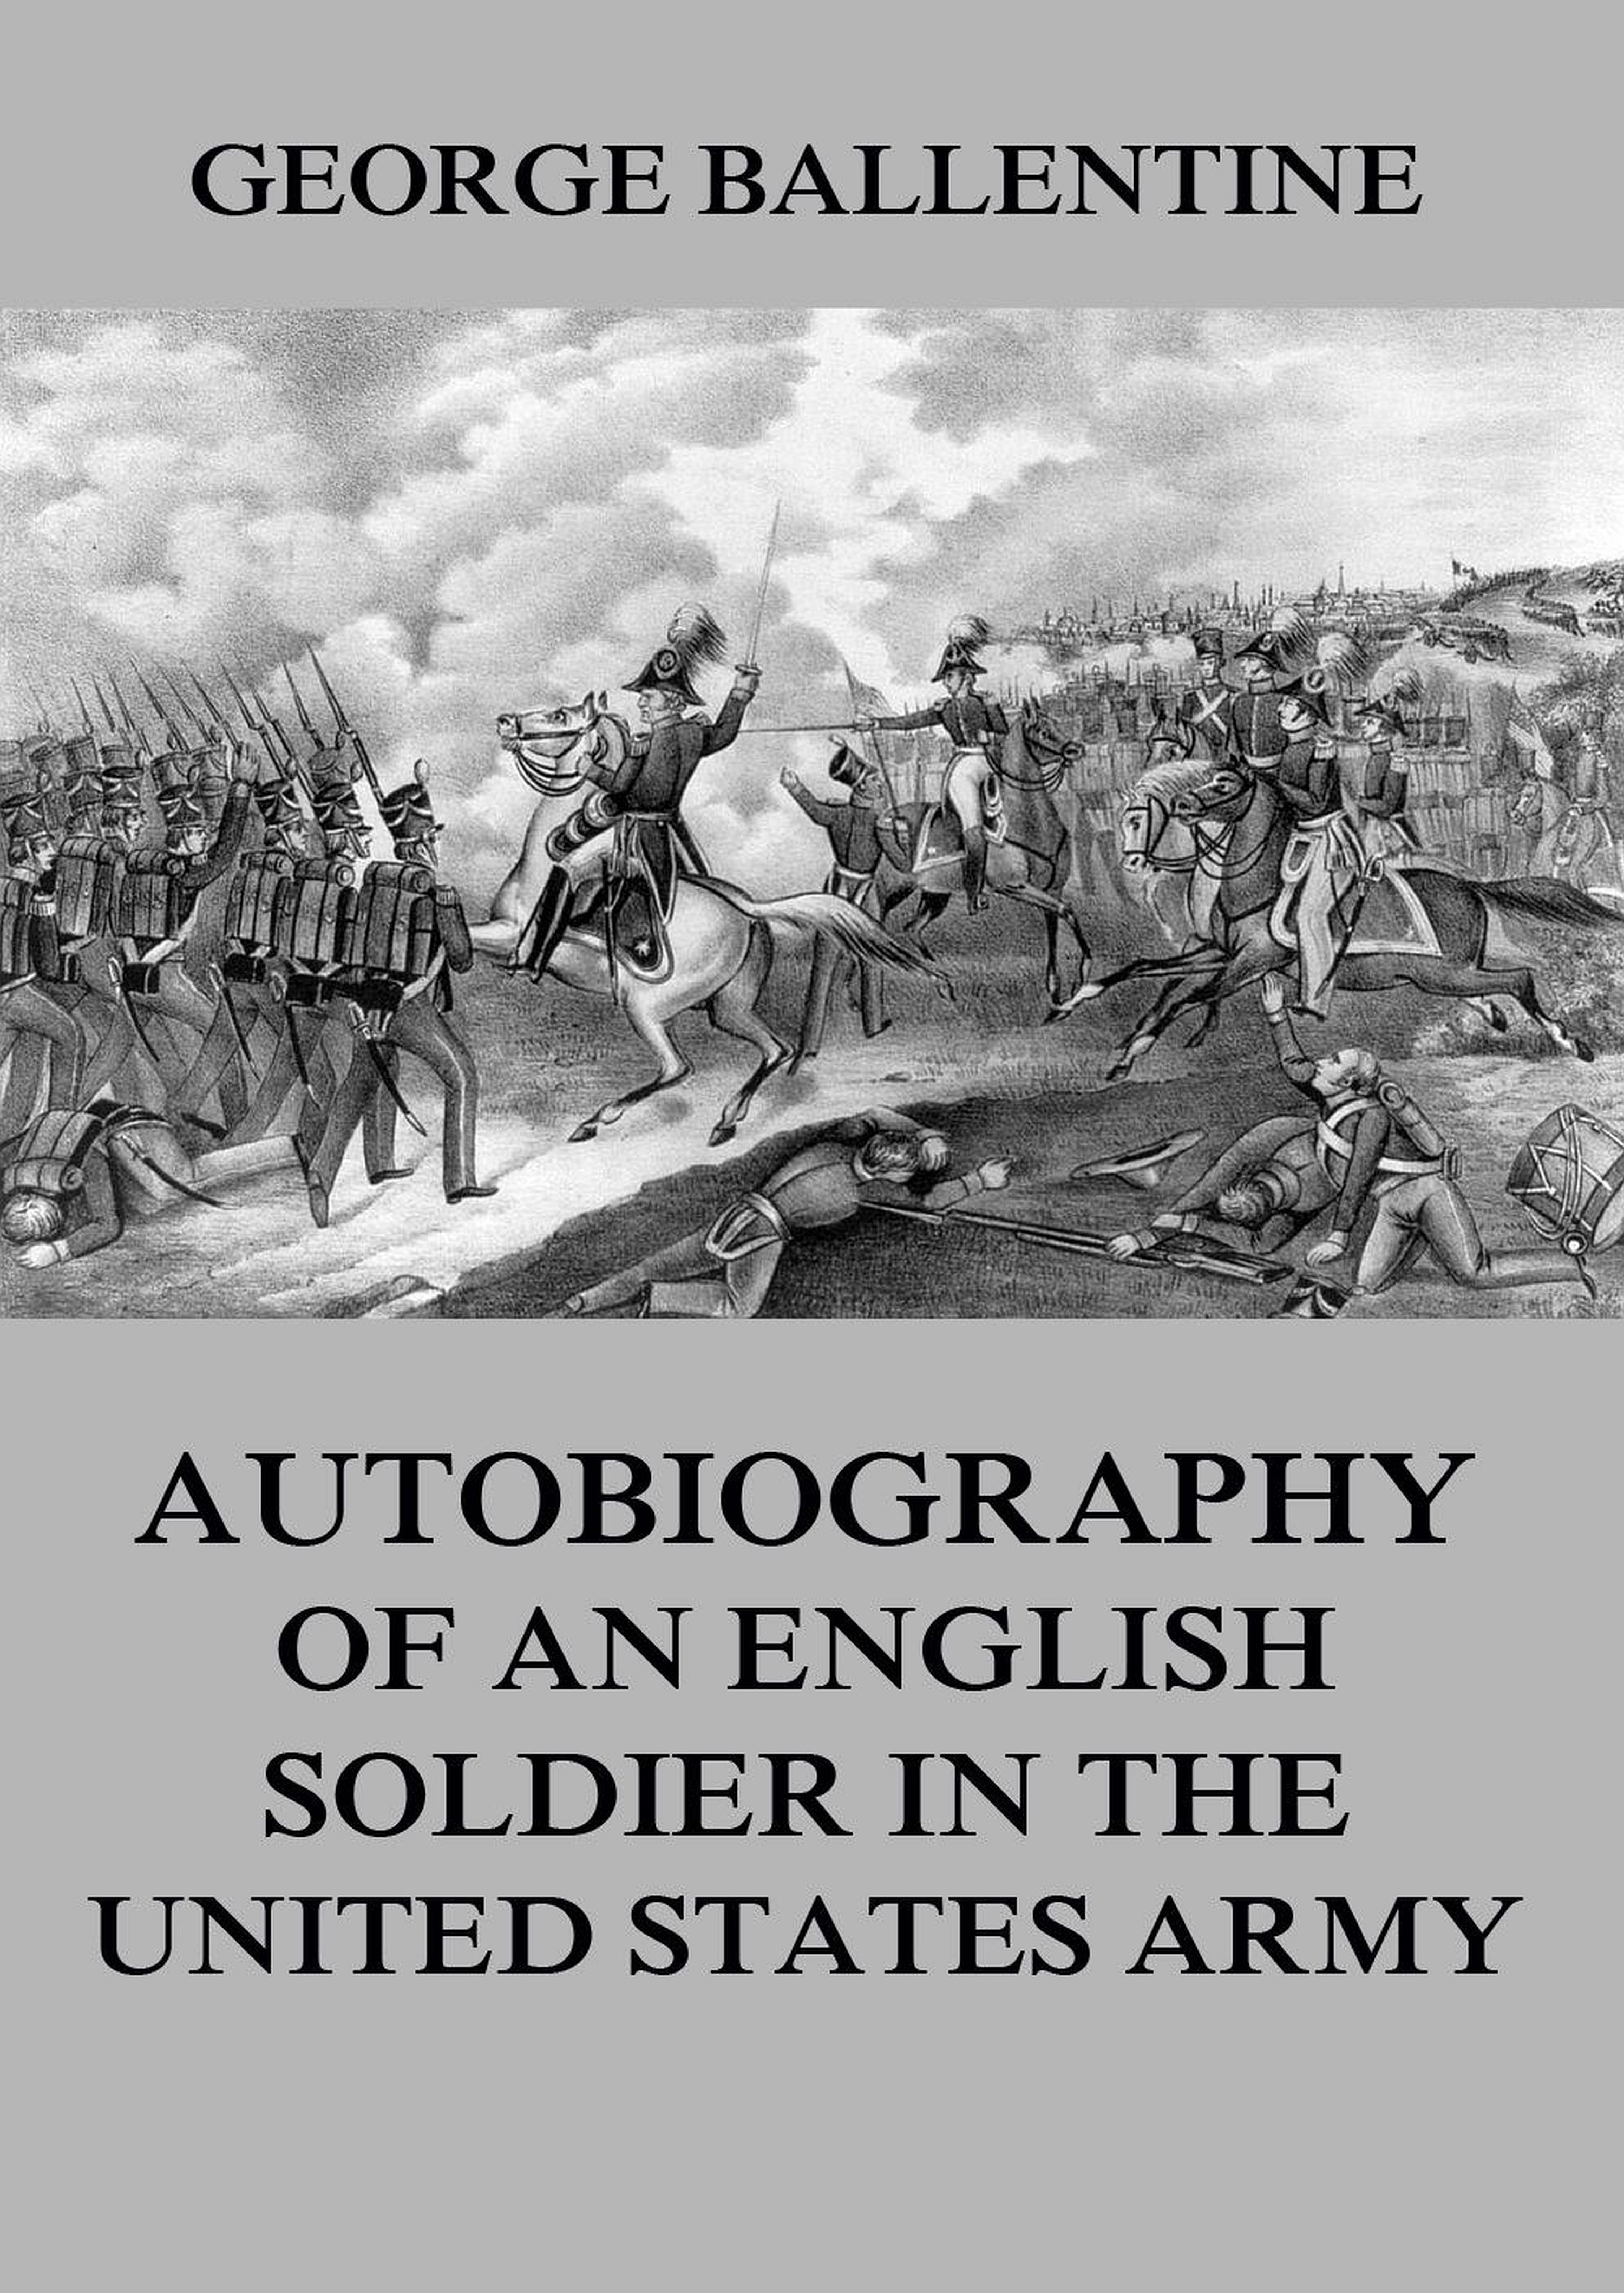 George Ballentine Autobiography of an English soldier in the United States Army olabode adetoyi the entrepreneur an autobiography of prince olabode adetoyi